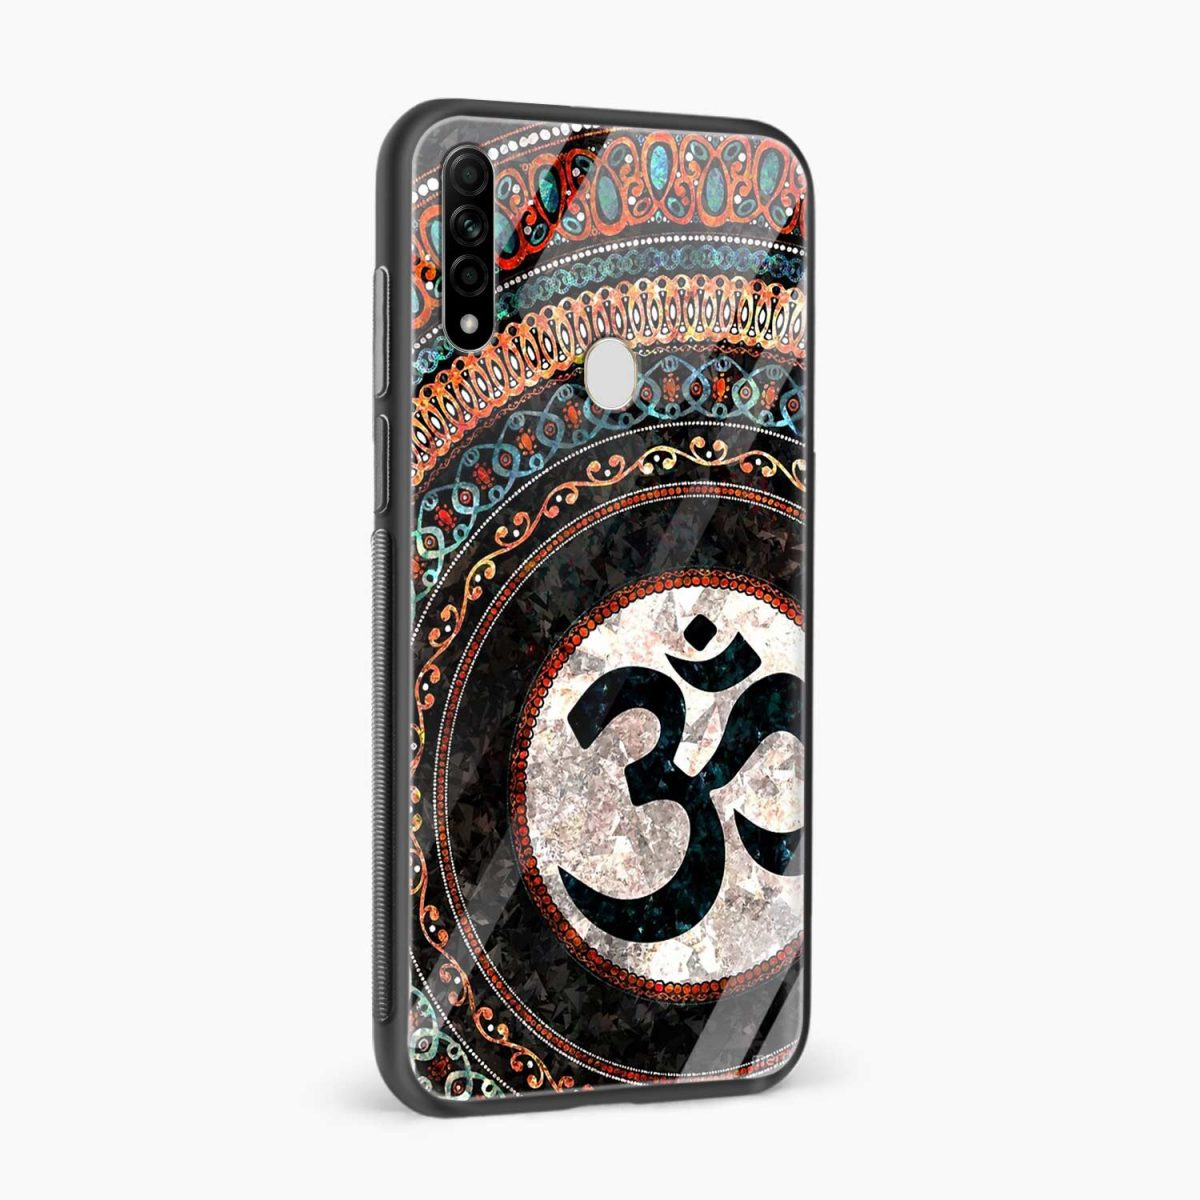 om glass side view oppo a31 back cover